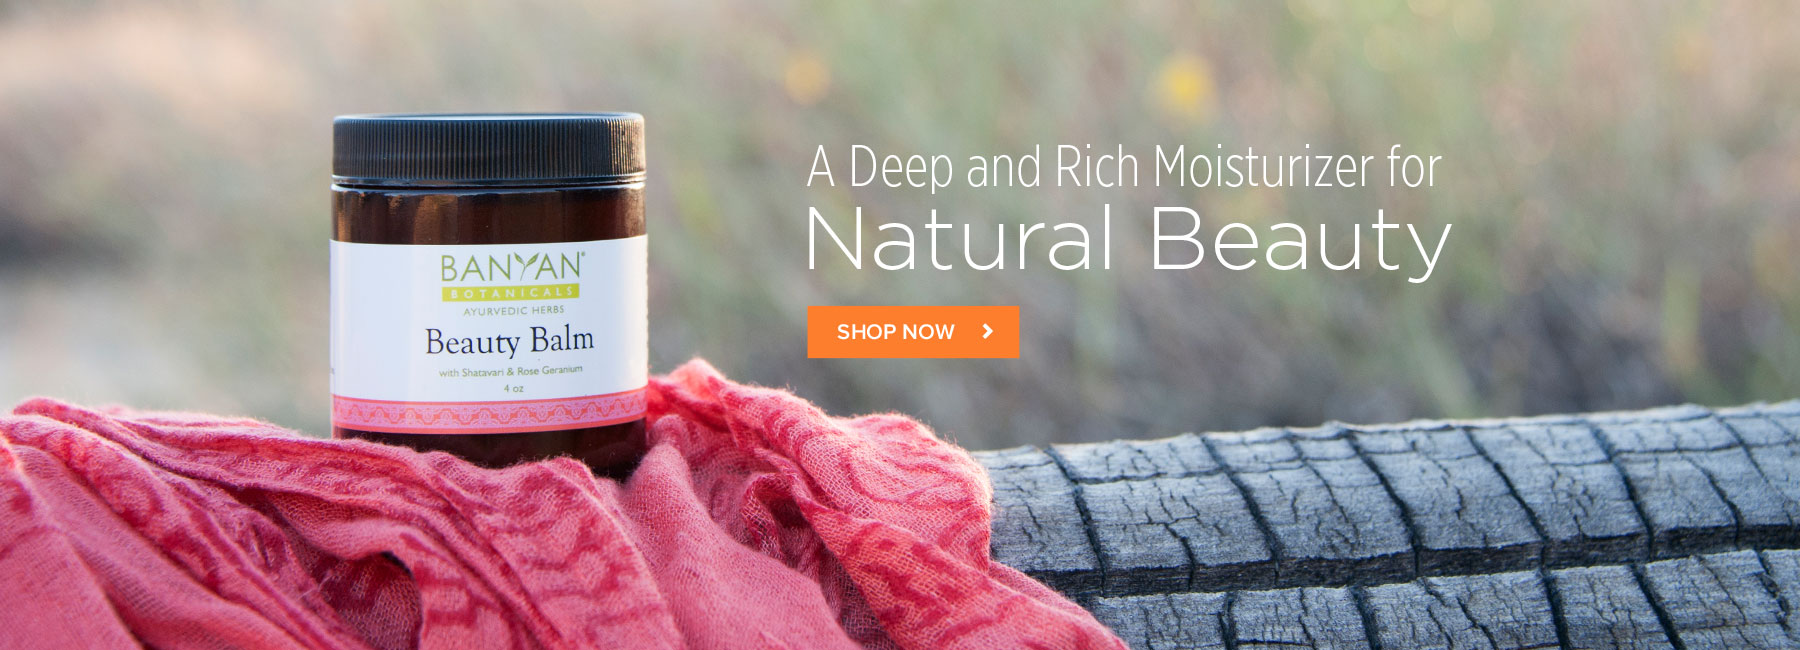 A Deep and Rich Moisturizer for Natural Beauty